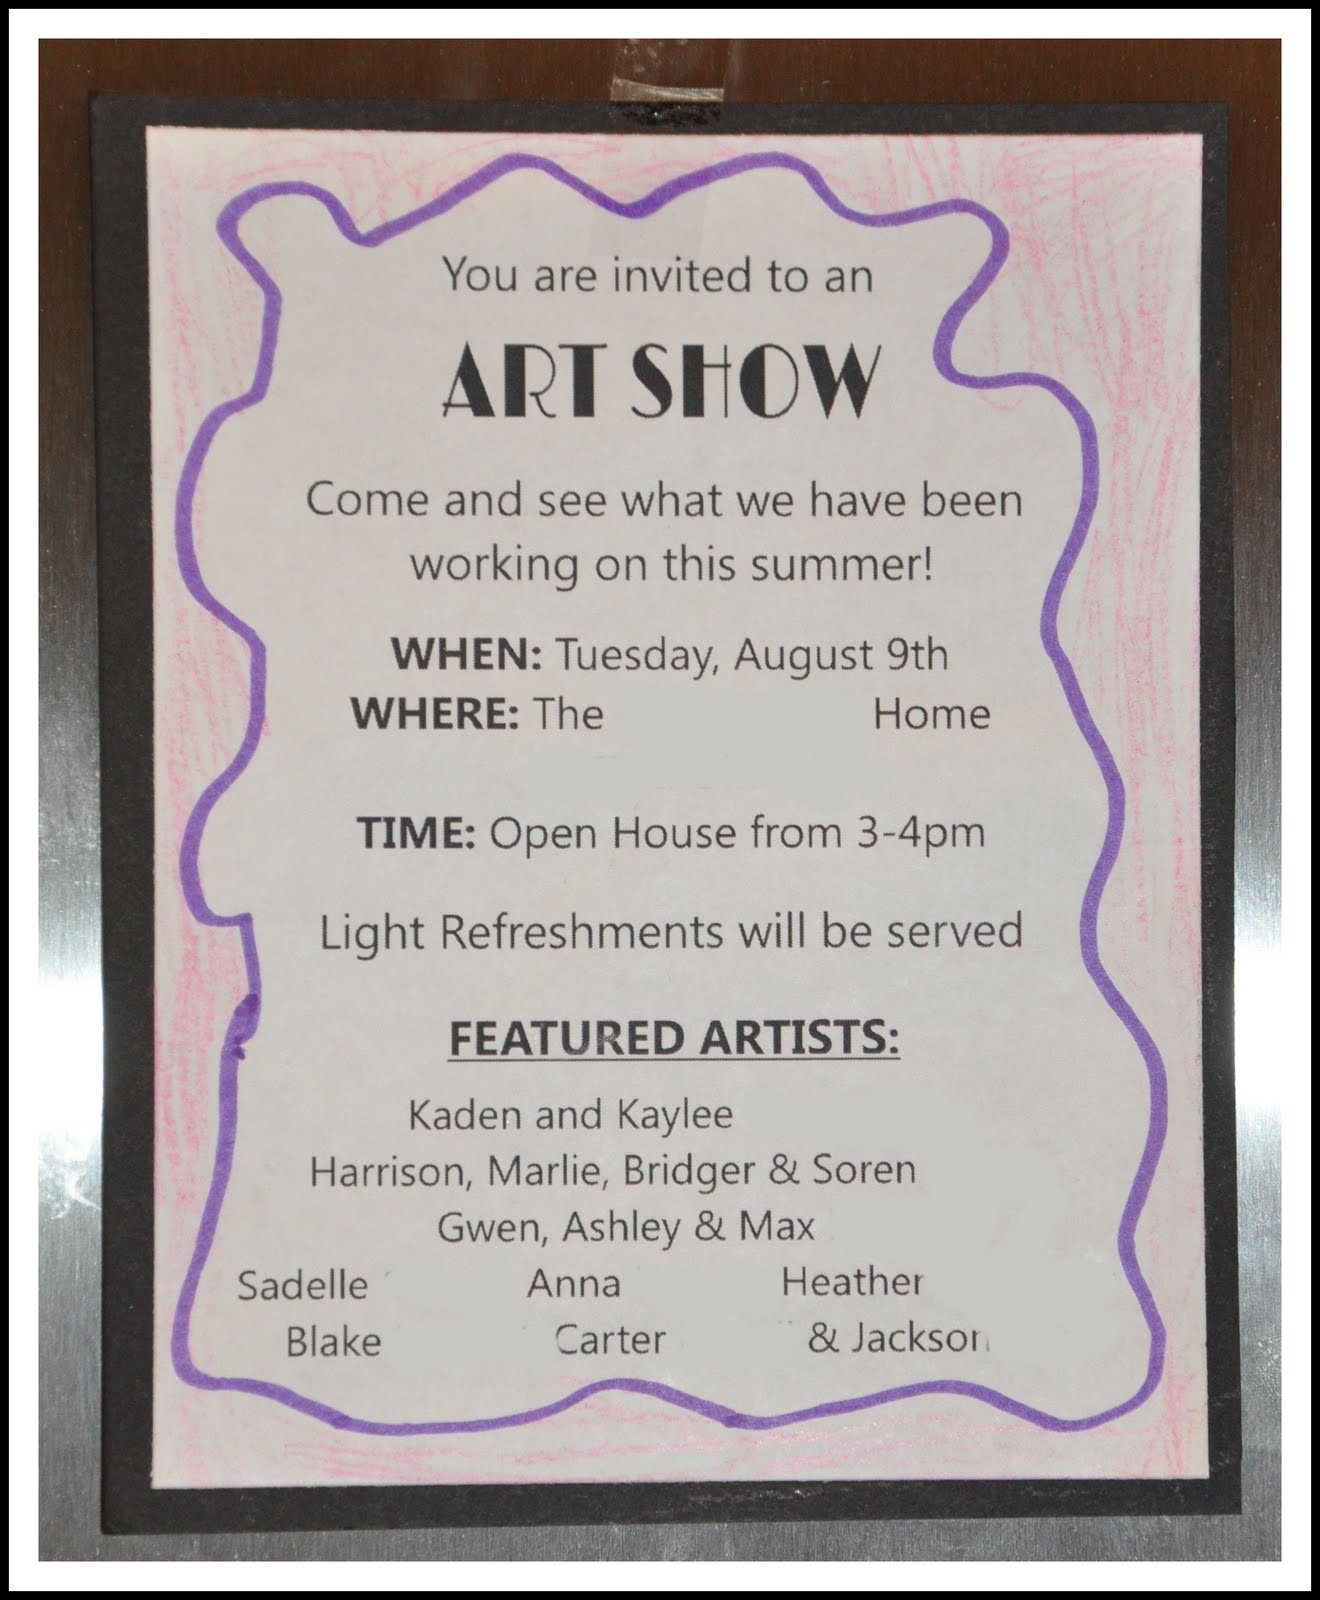 Homemaking Fun: Summer Art Classes and Show